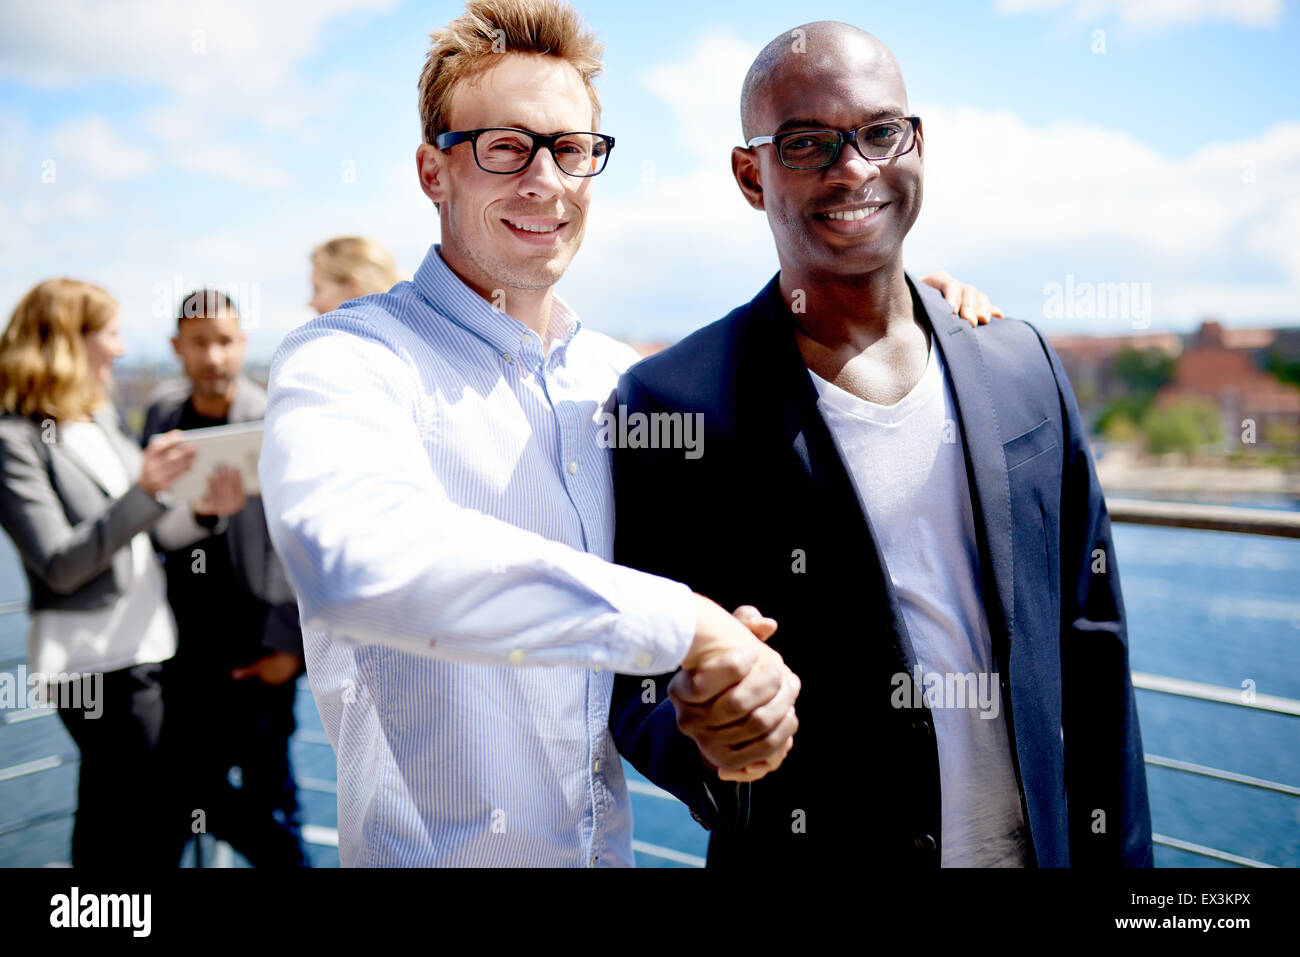 Black male colleague and white male colleague smiling at camera and shaking hands - Stock Image